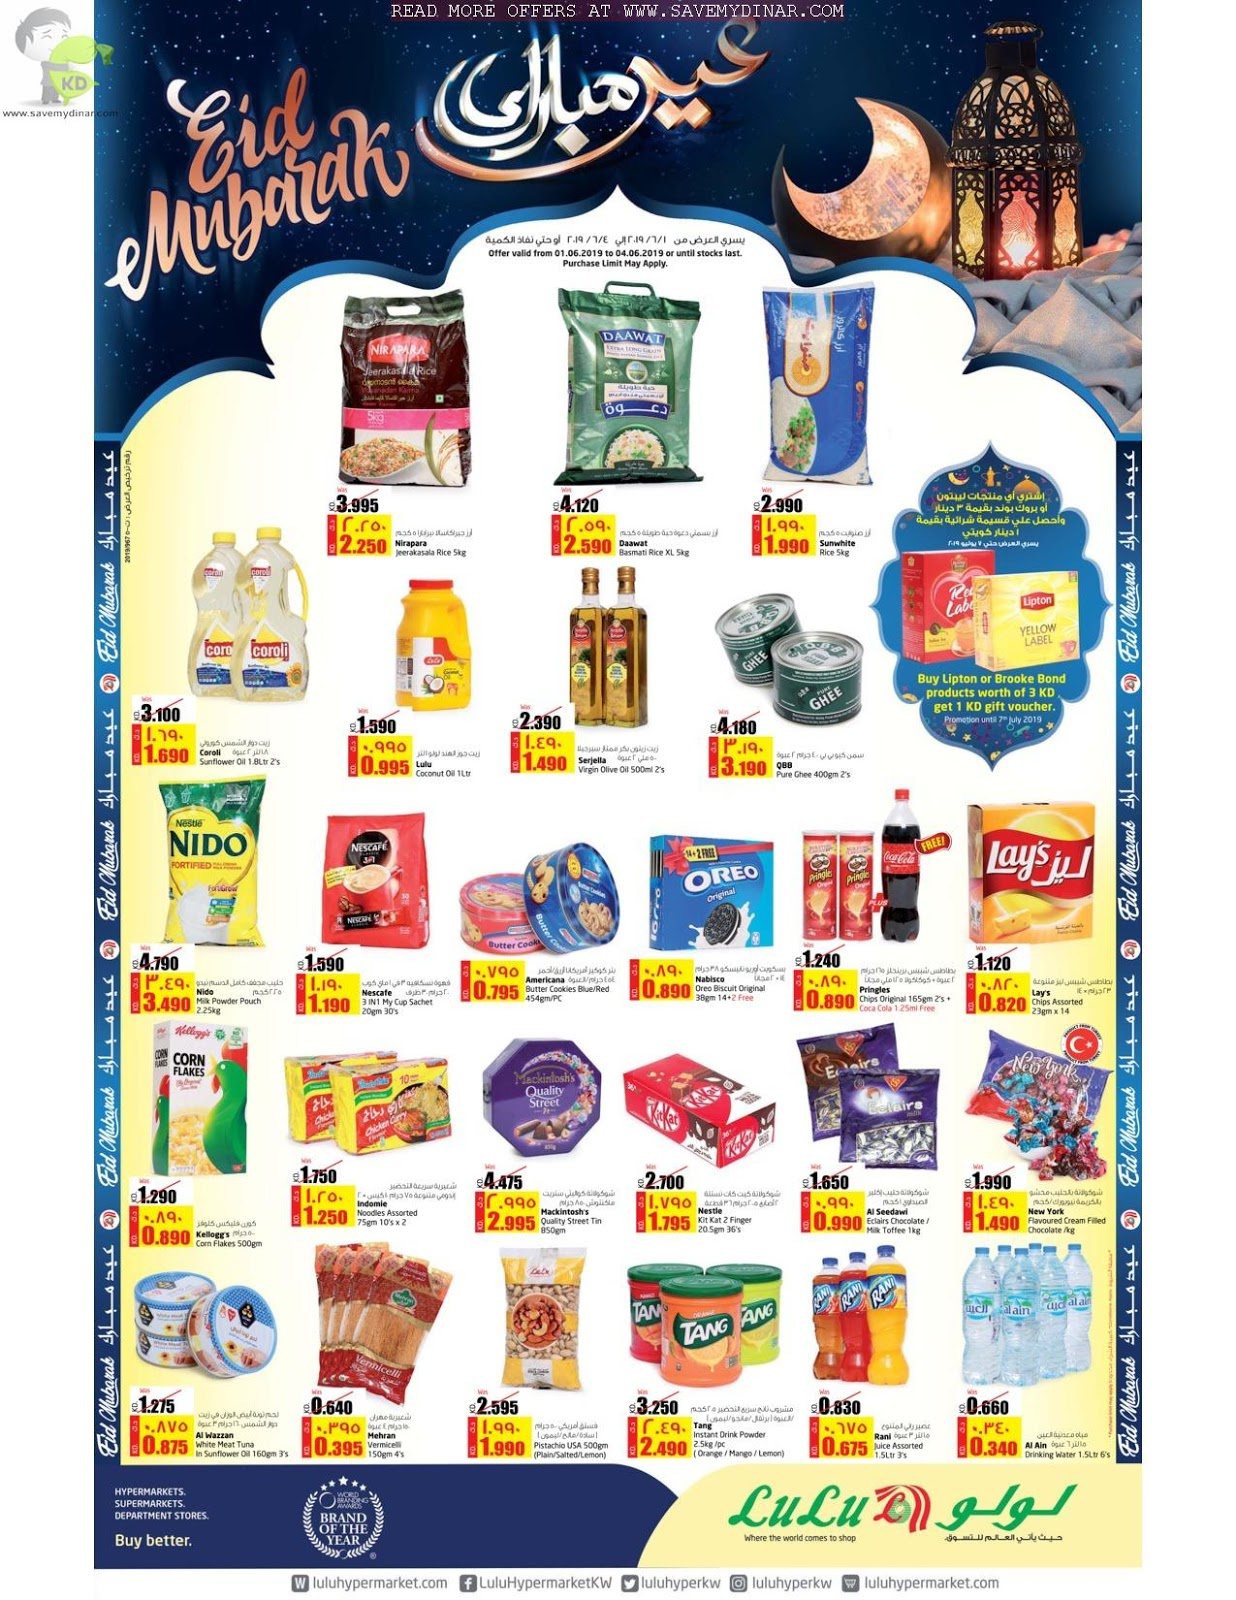 SaveMyDinar - Offers, Deals & Promotions in Kuwait - All Post